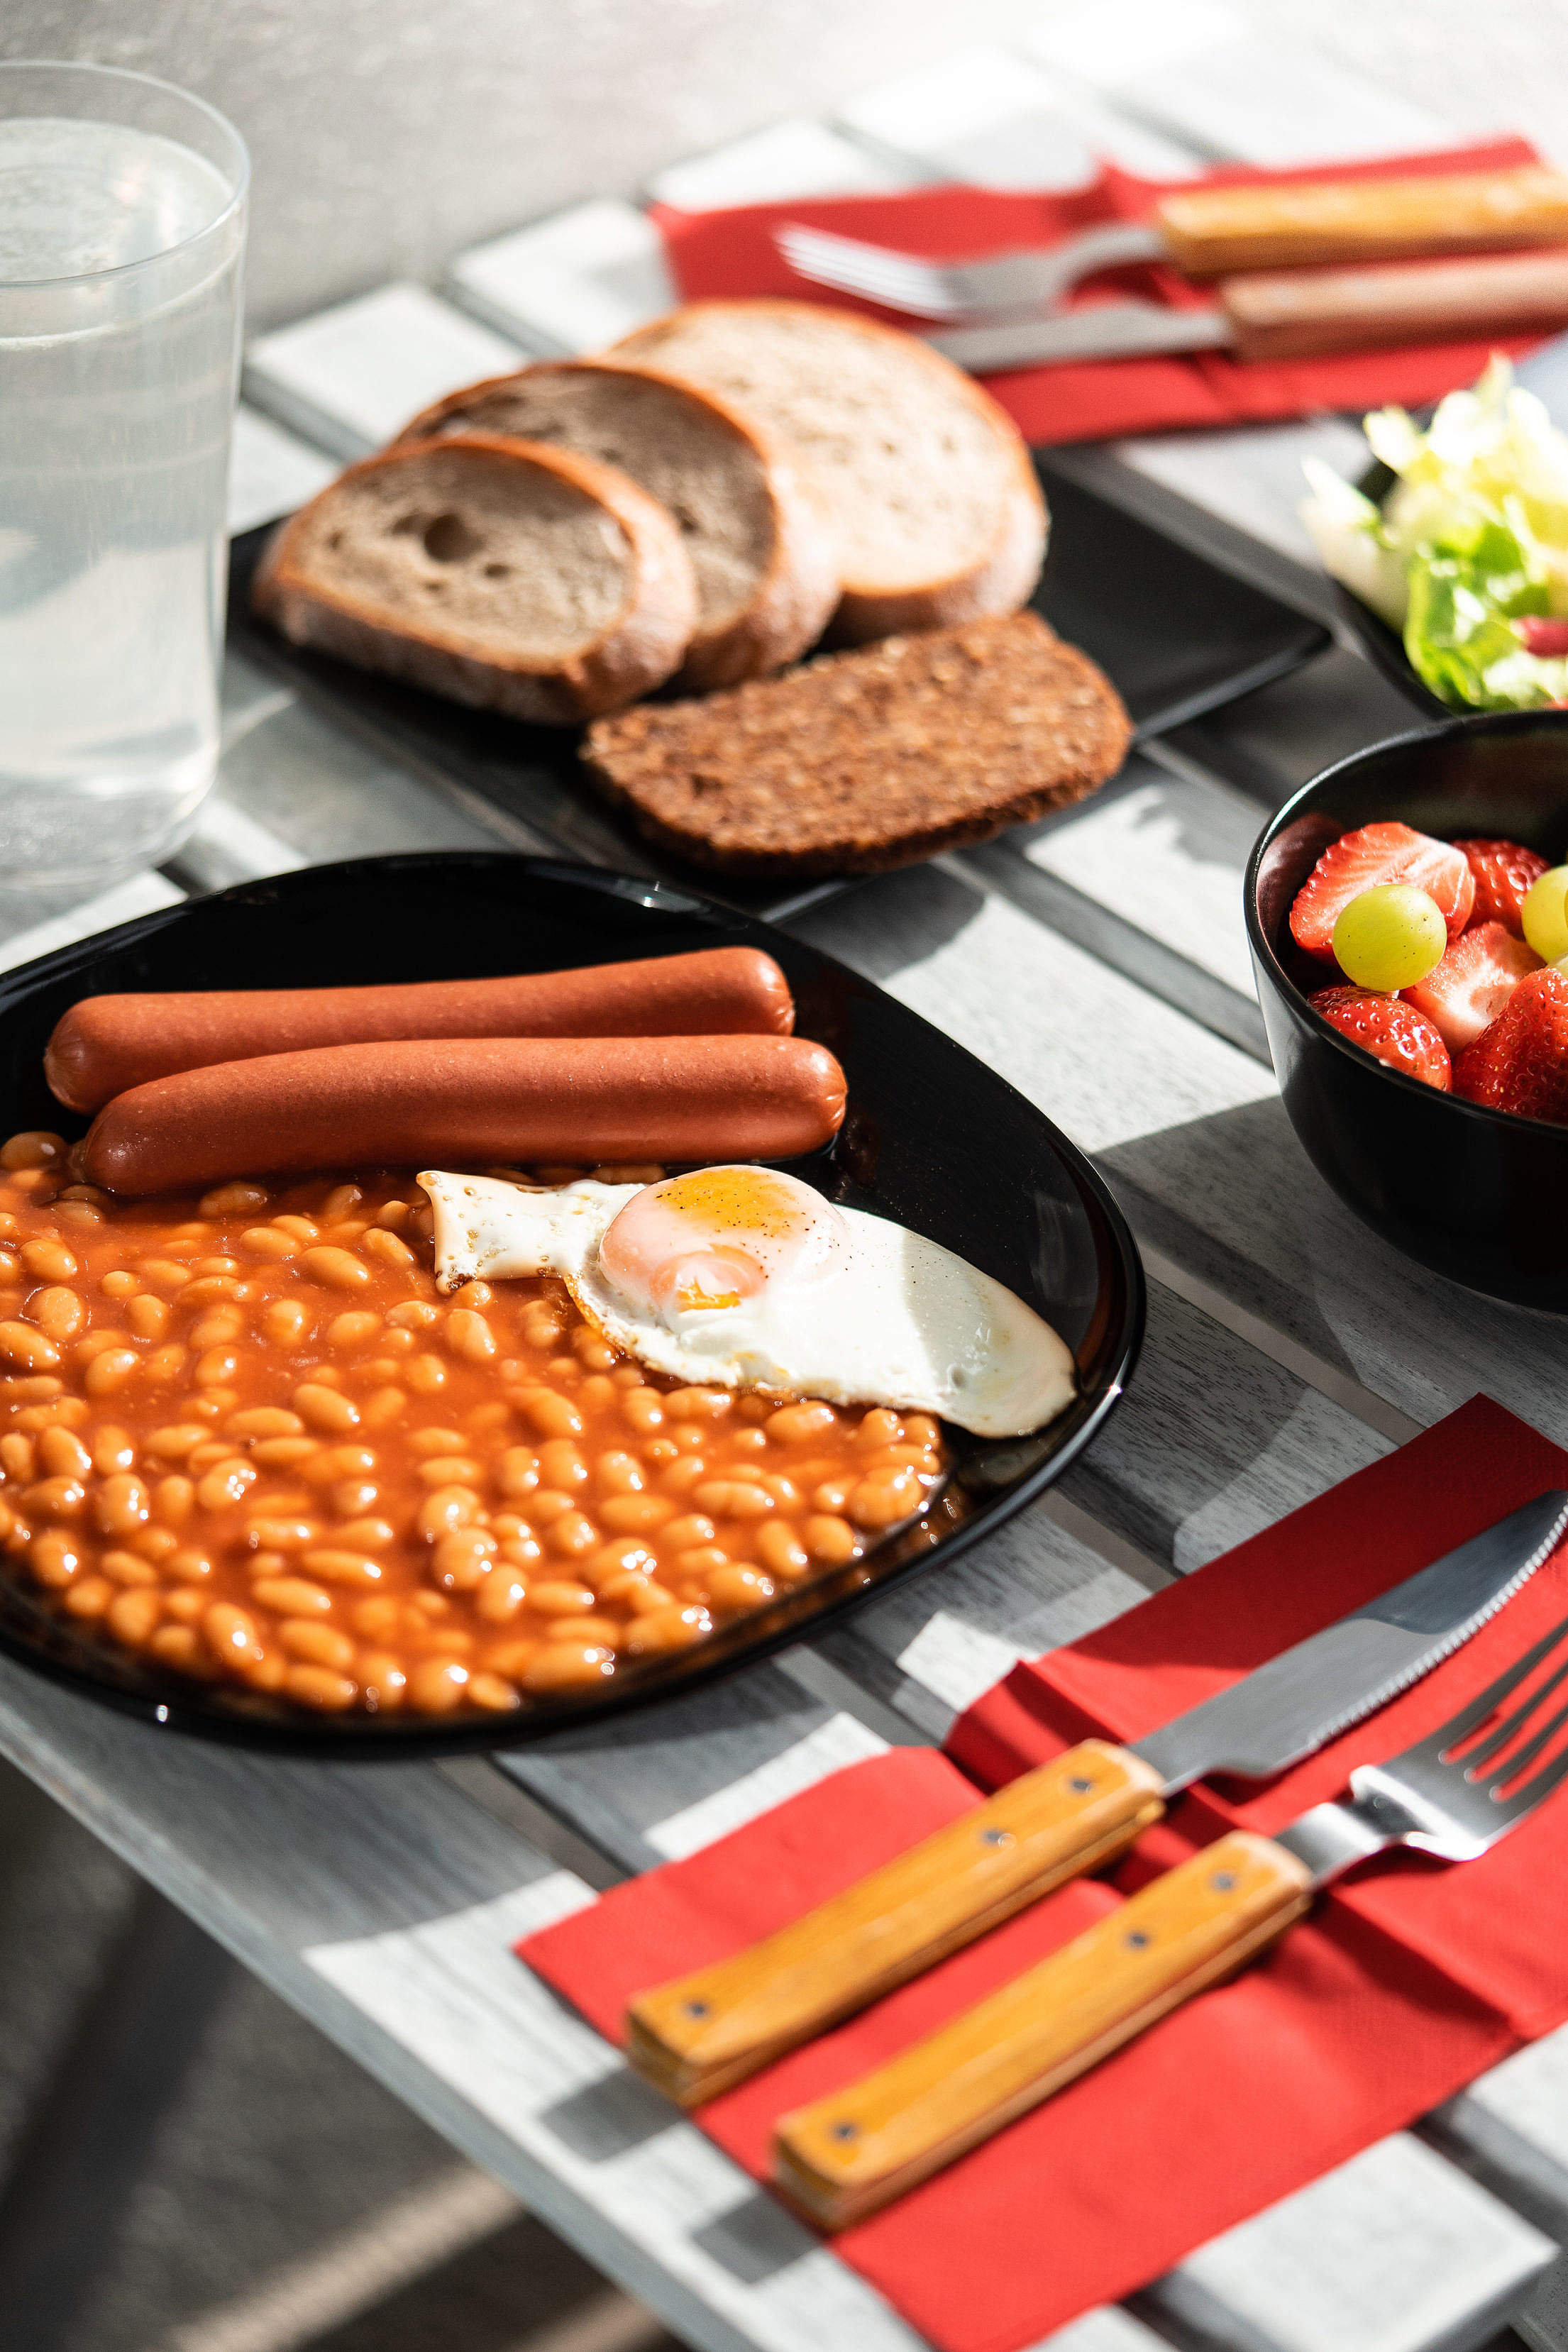 Sausages with Beans and Fried Egg Free Stock Photo